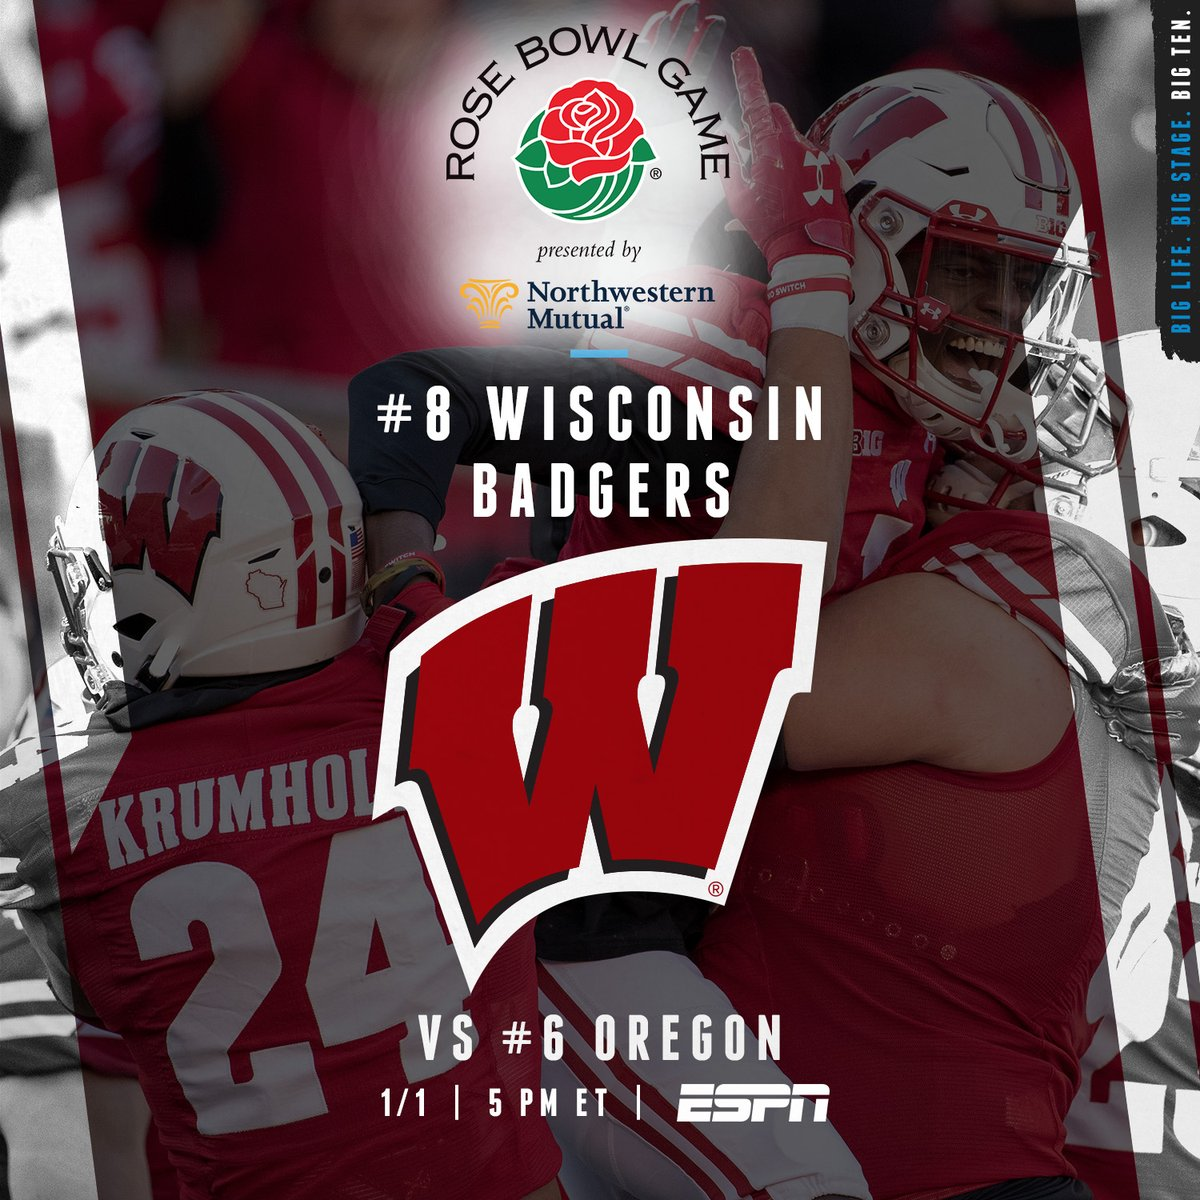 In its tenth @rosebowlgame appearance, No. 8 @BadgerFootball will take on No. 6 Oregon today in The Granddaddy of Them All at 5:10 PM ET on ESPN.  #B1GFootball x #RoseBowl https://t.co/lSFMjvLsZR